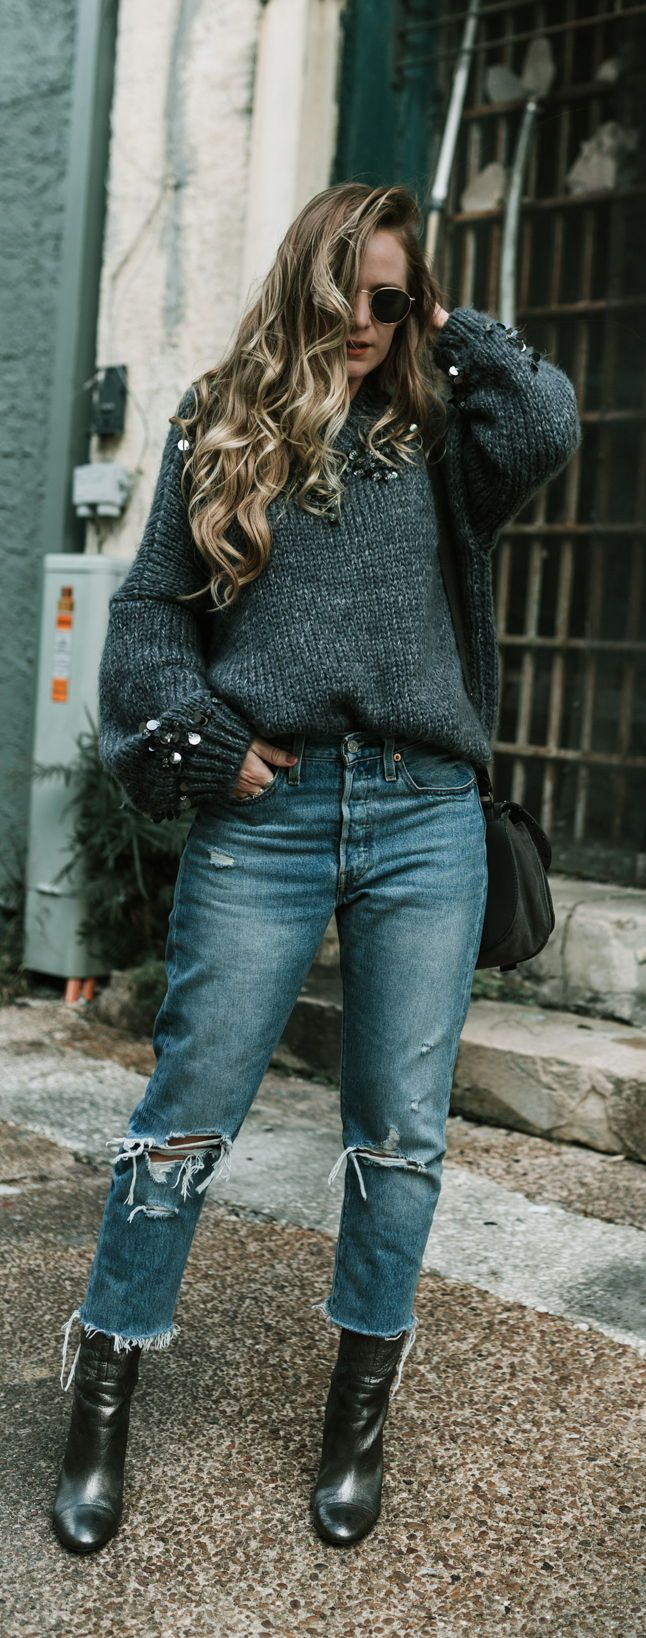 Edgy winter look styled with sequin embellished oversized sweater, distressed Levi jeans and metallic booties #edgywinteroutfit #sequinsweater #winteroutfit